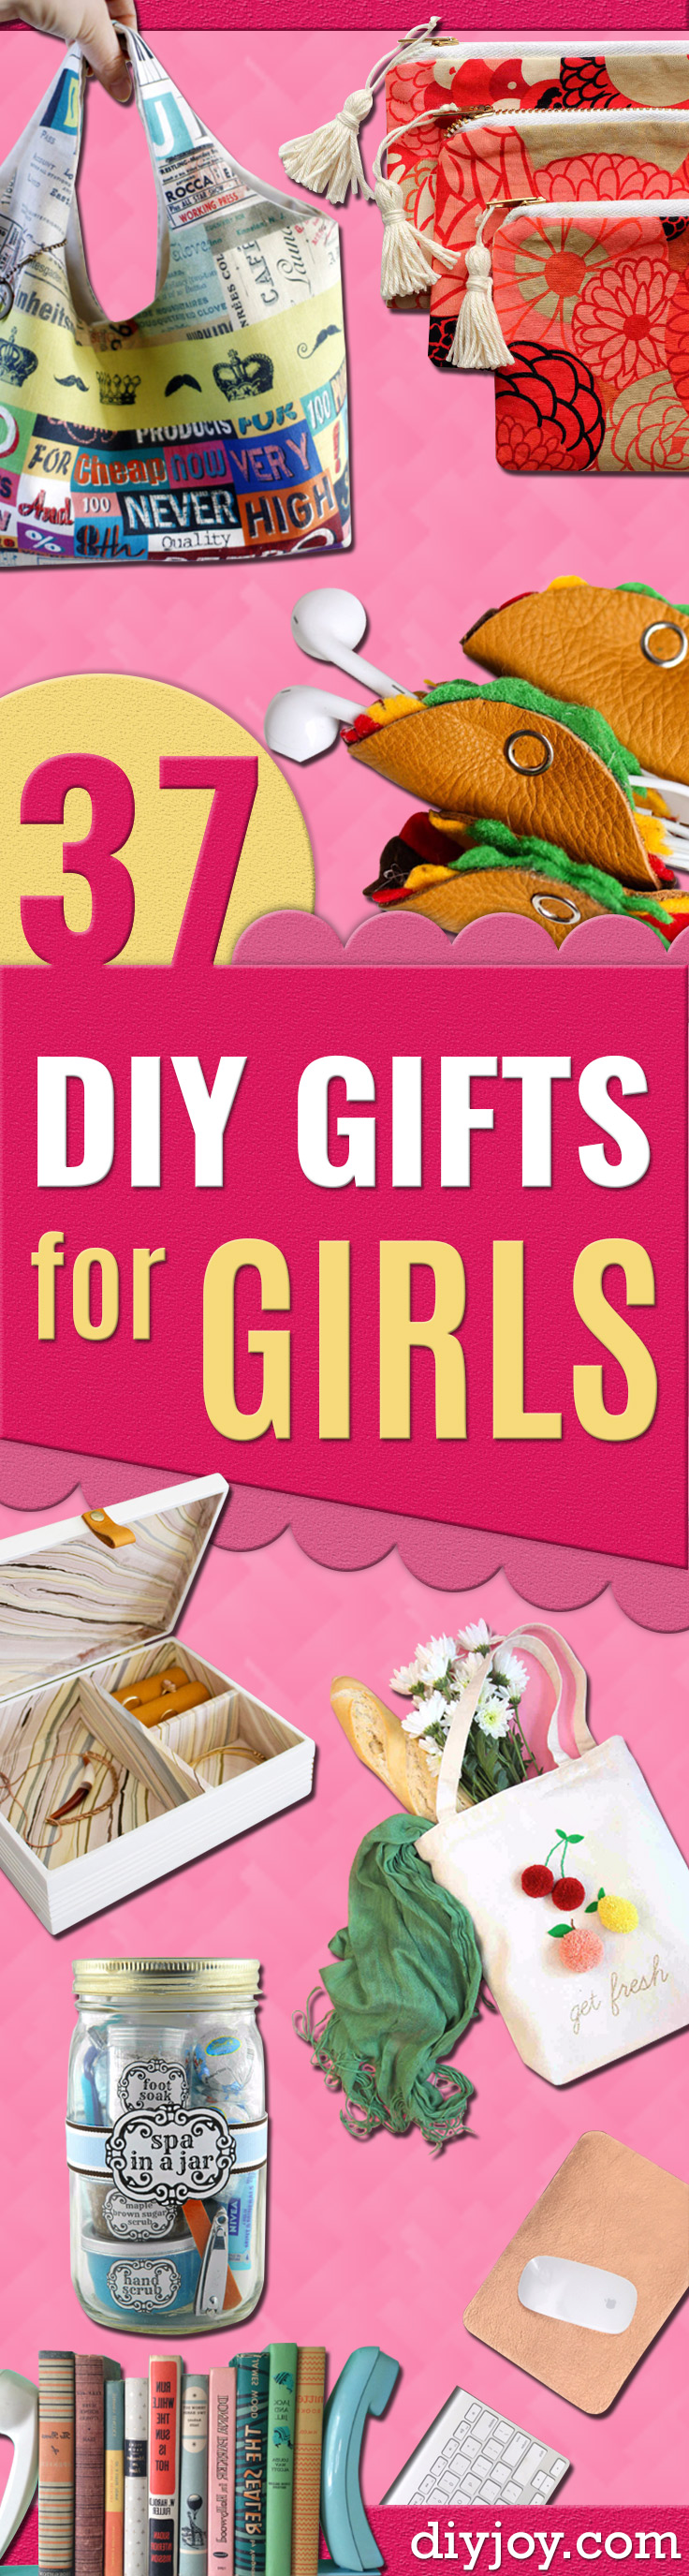 37 Best DIY Gifts for Girls